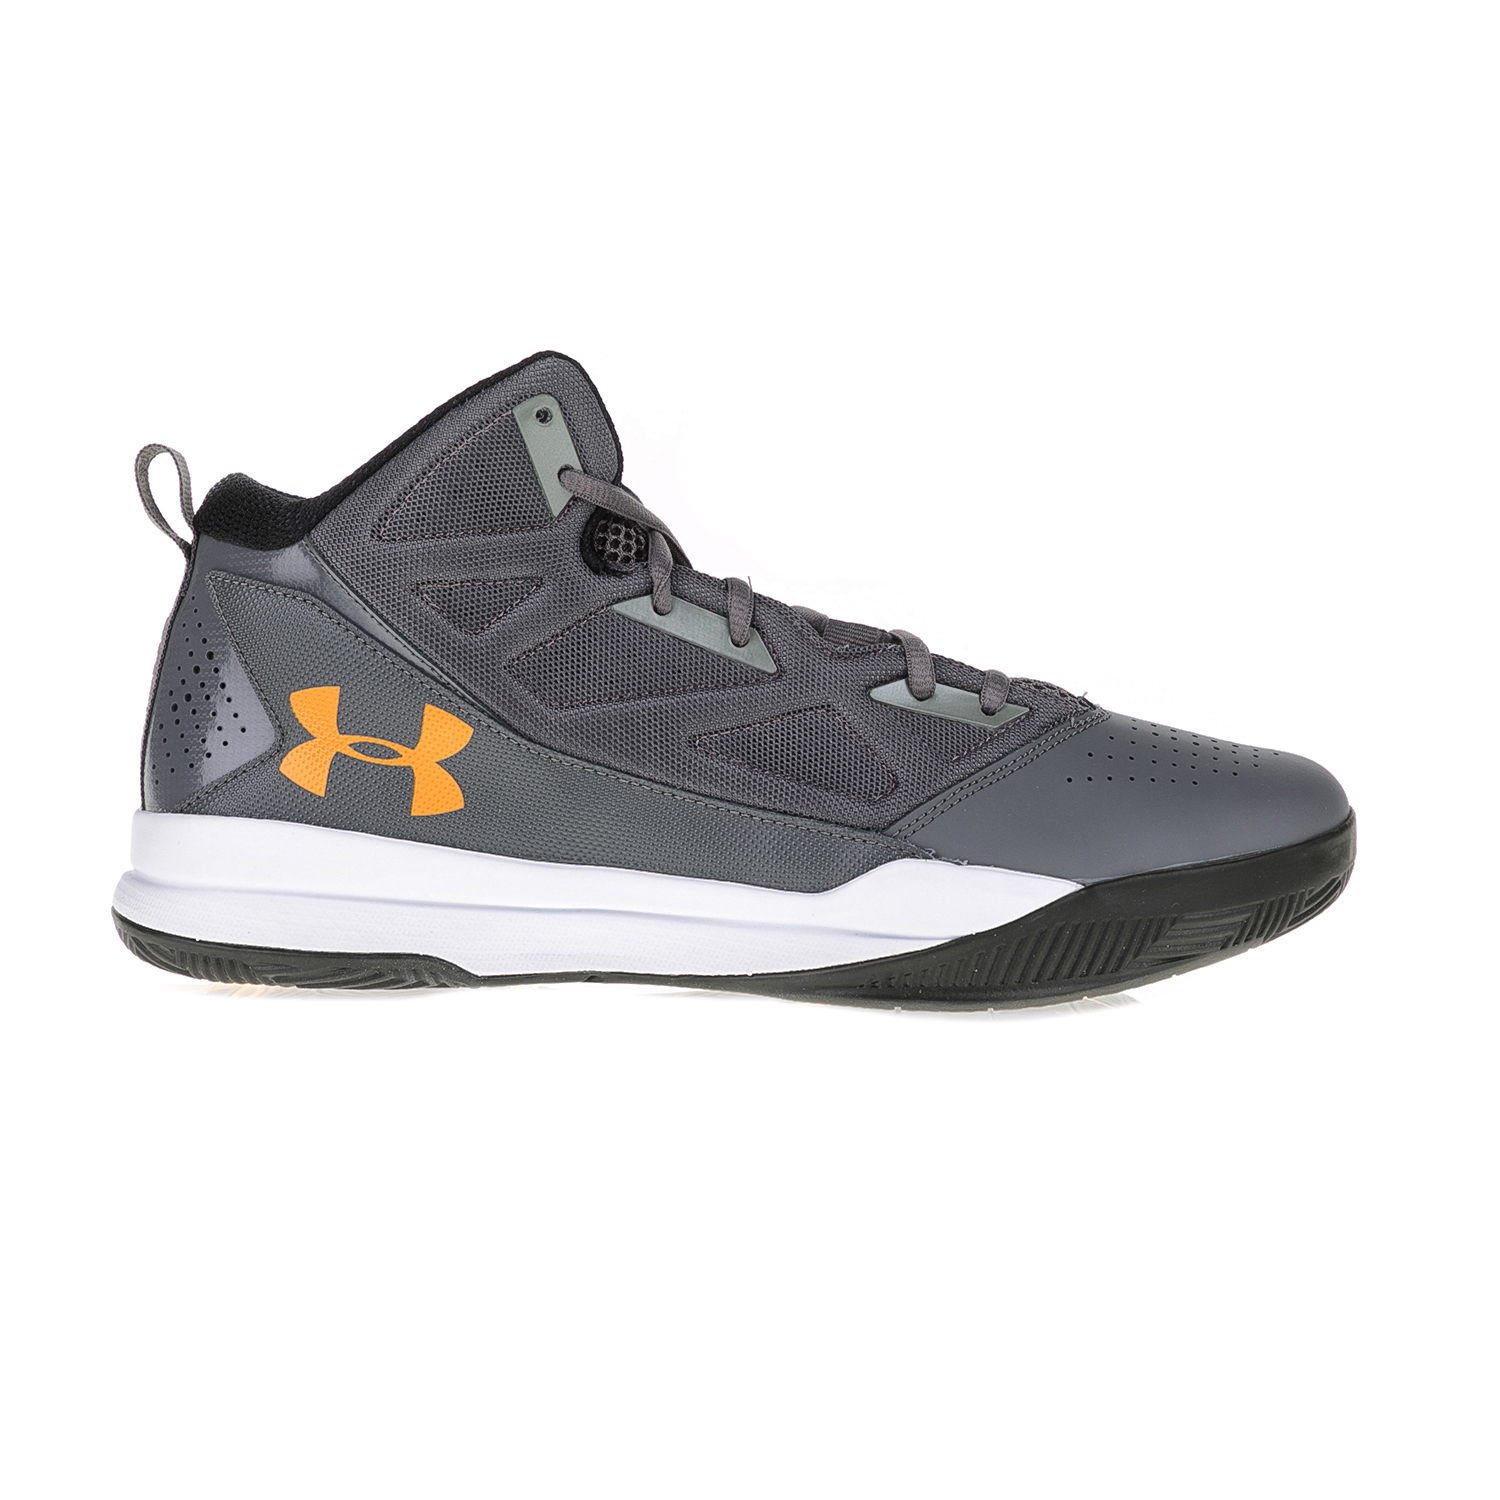 UNDER ARMOUR – Ανδρικά παπούτσια μπάσκετ UNDER ARMOUR Jet Mid γκρι